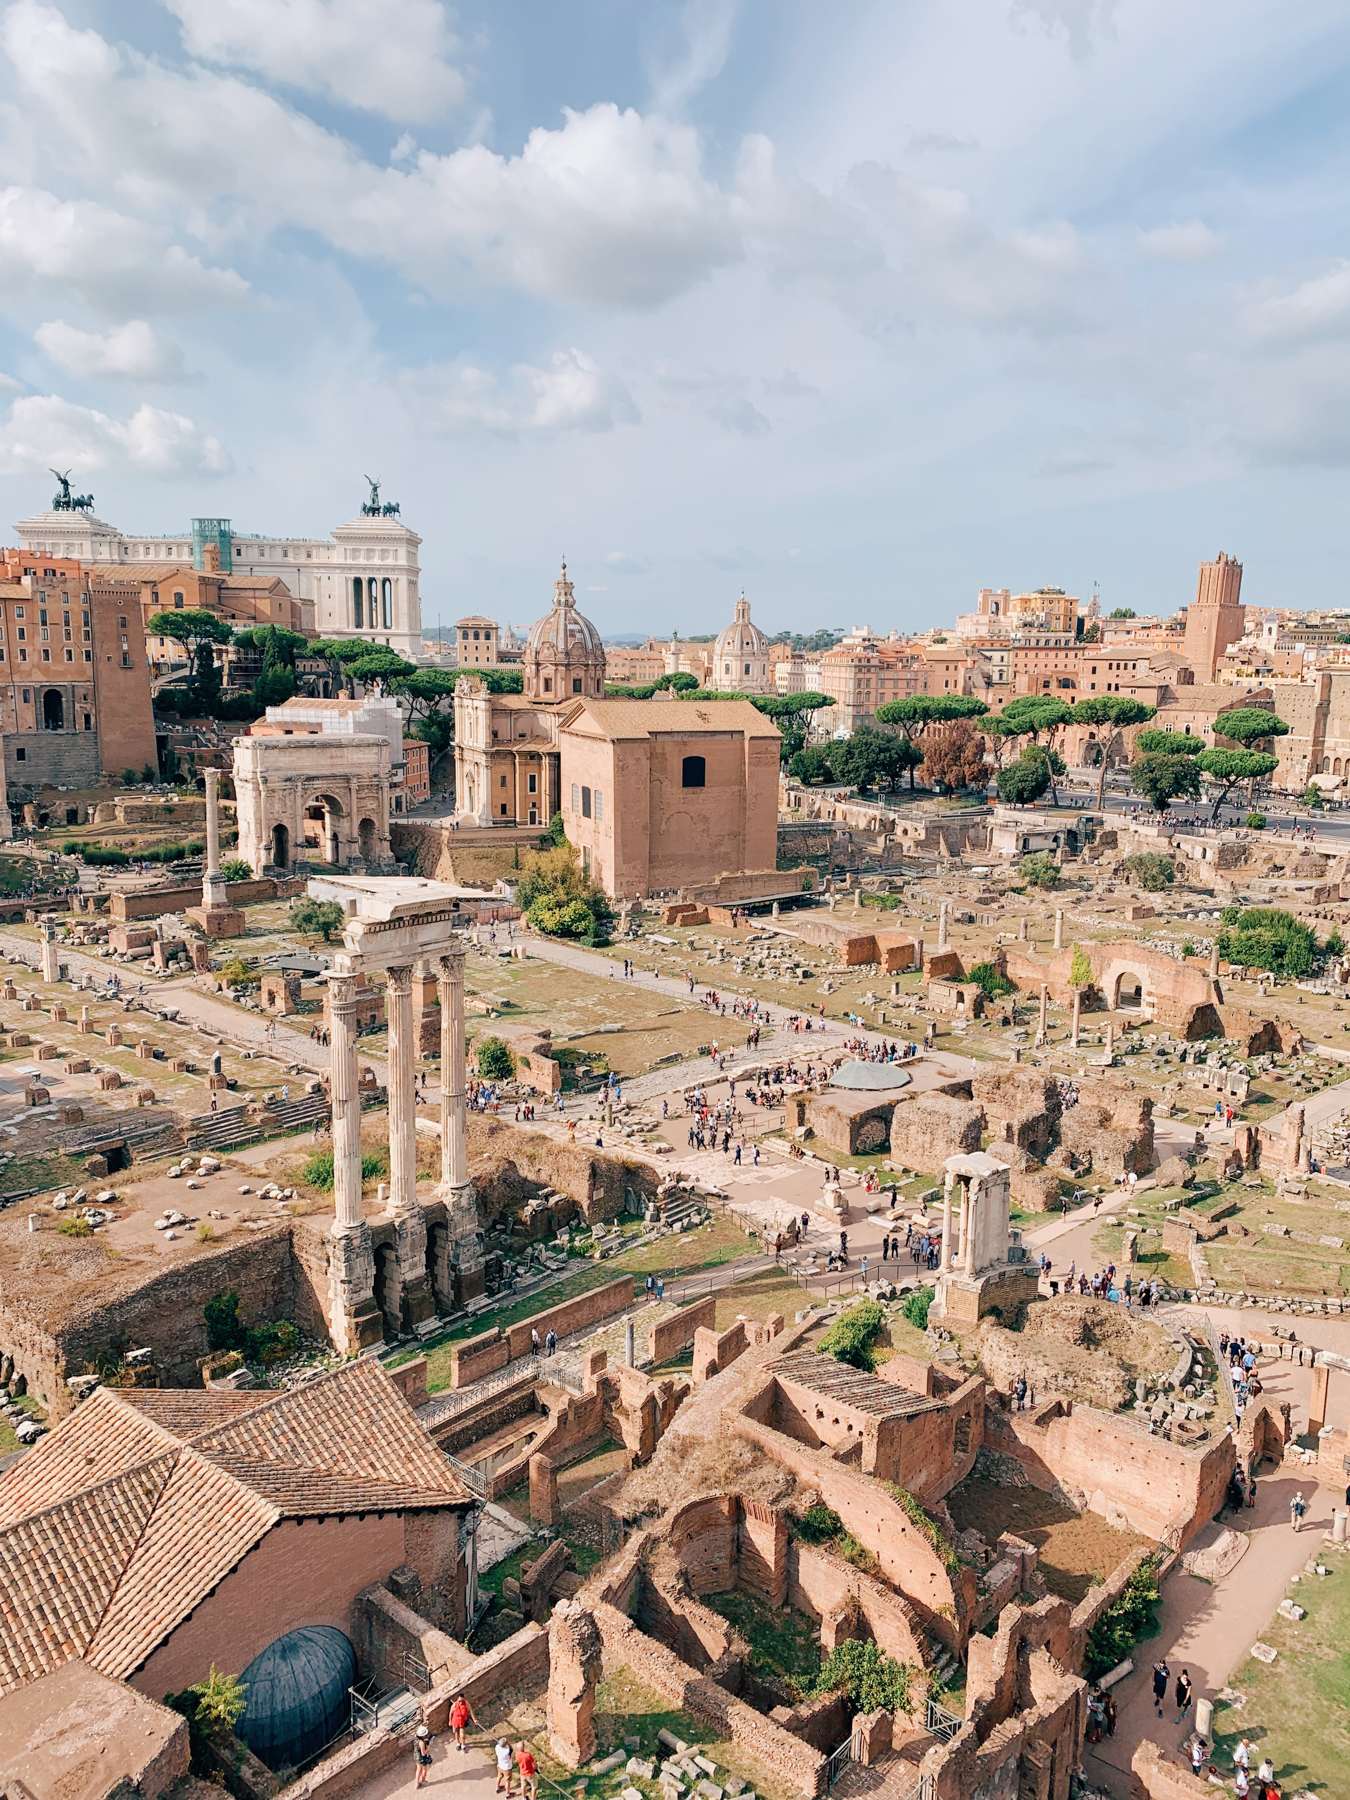 View looking down on the Roman Forum during our tour.